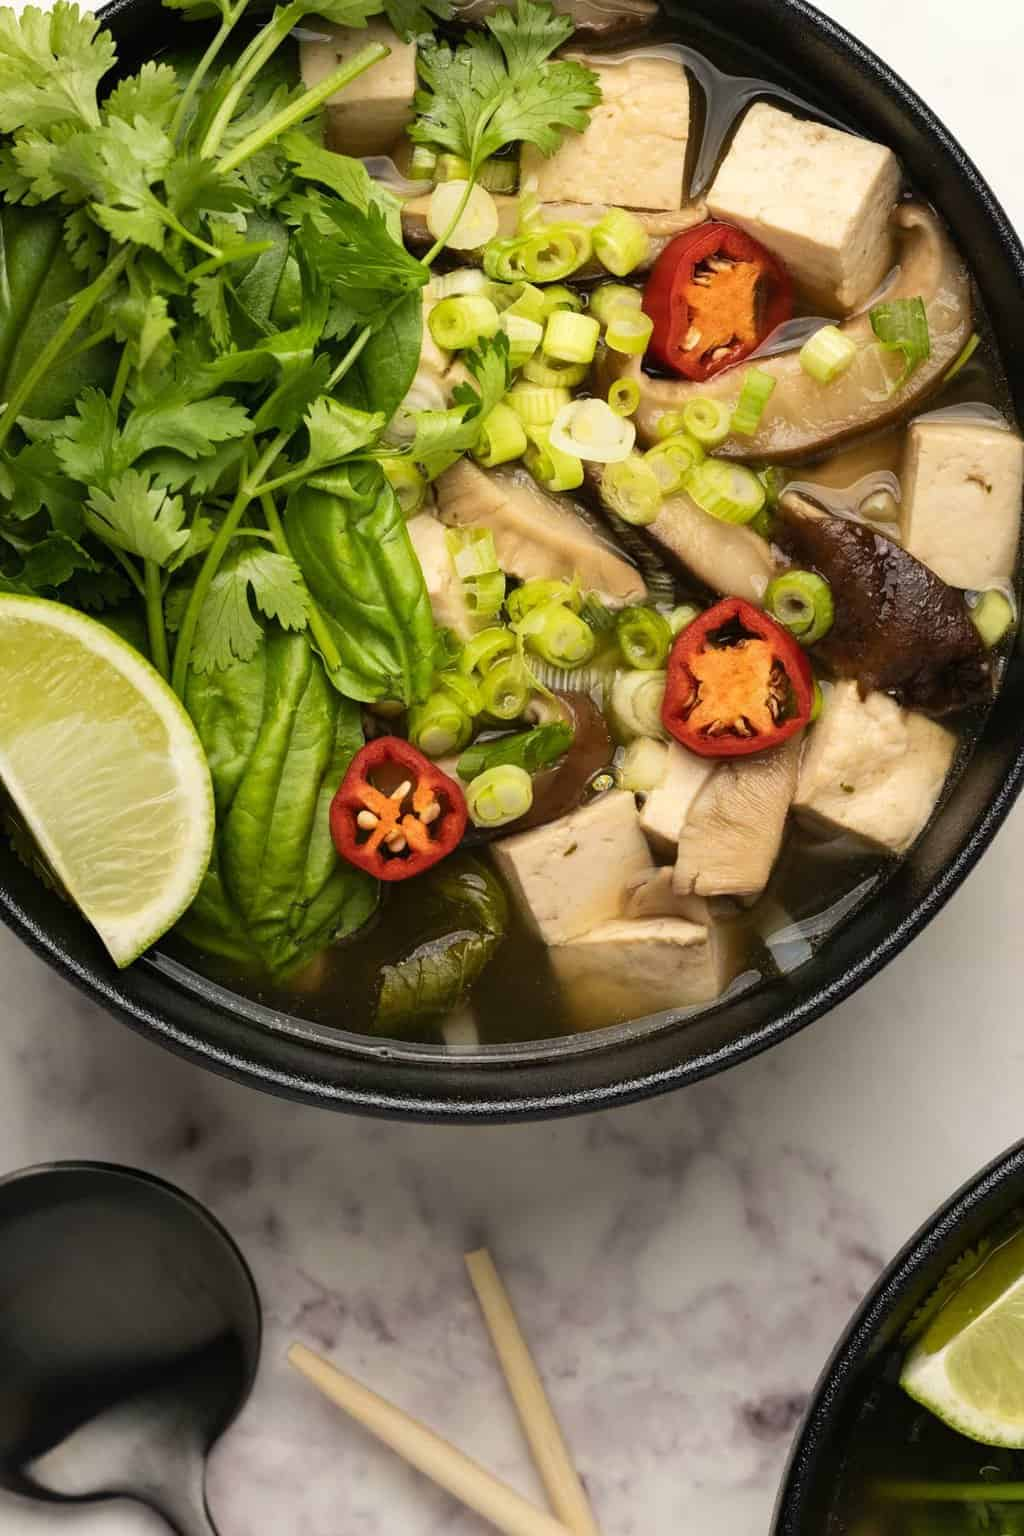 Vegan pho with fresh herbs, lime and chili in a black bowl.